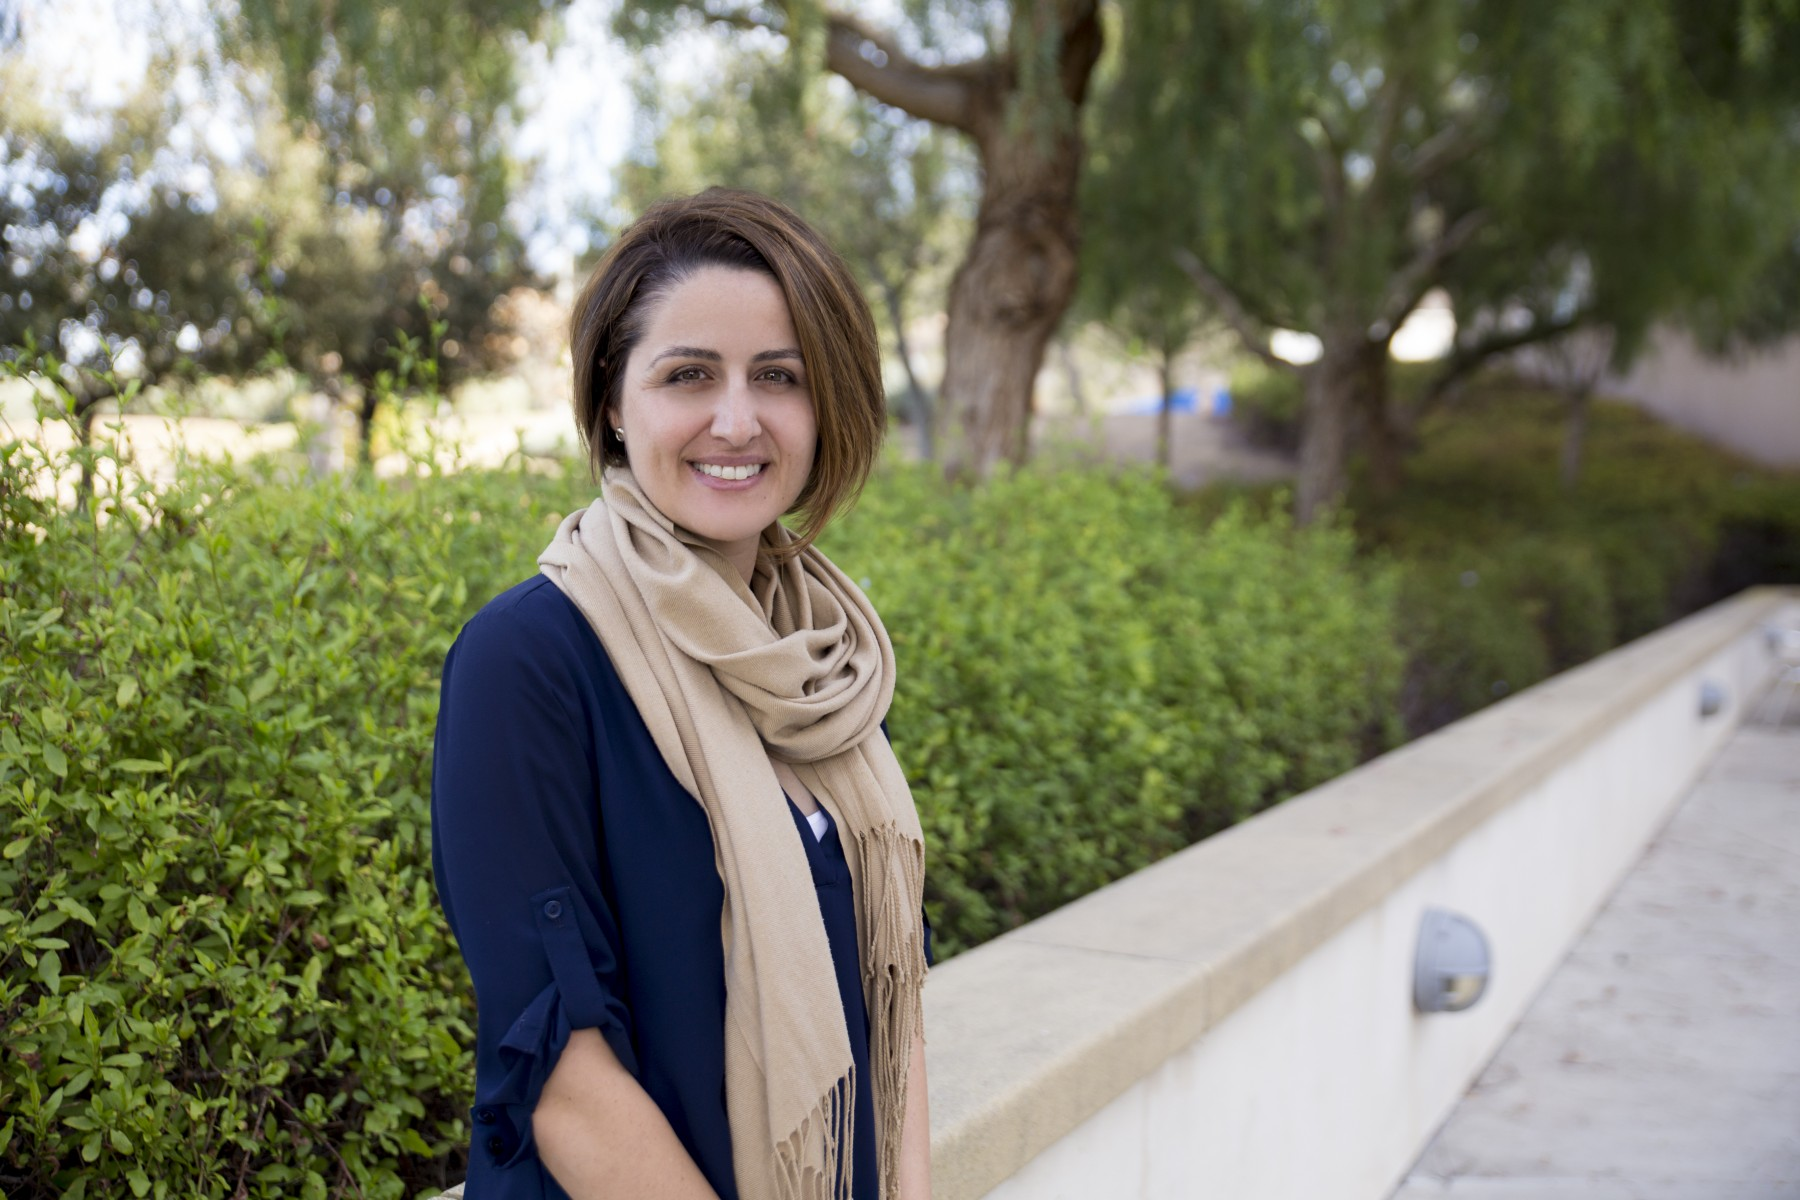 Professor Sinem Siyahhan created a way to continue her popular Education 422 course, which has CSUSM students helping K-12 students learn tools and techniques to learn STEM topics, remotely during the pandemic.